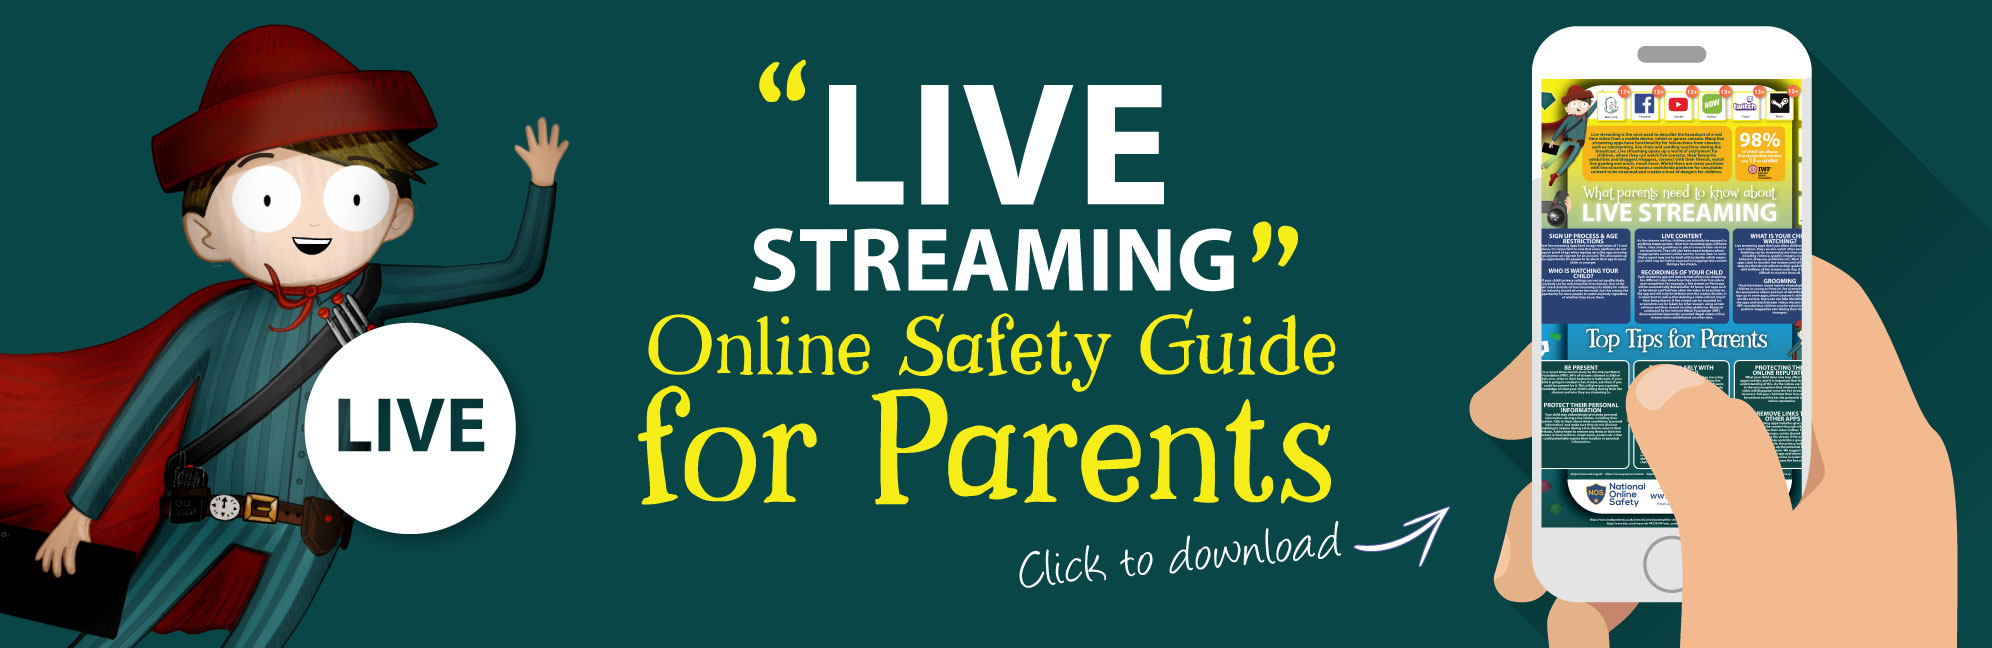 Live-streaming-Online-Safety-Parents-Guide-Web-Image-121118-V1